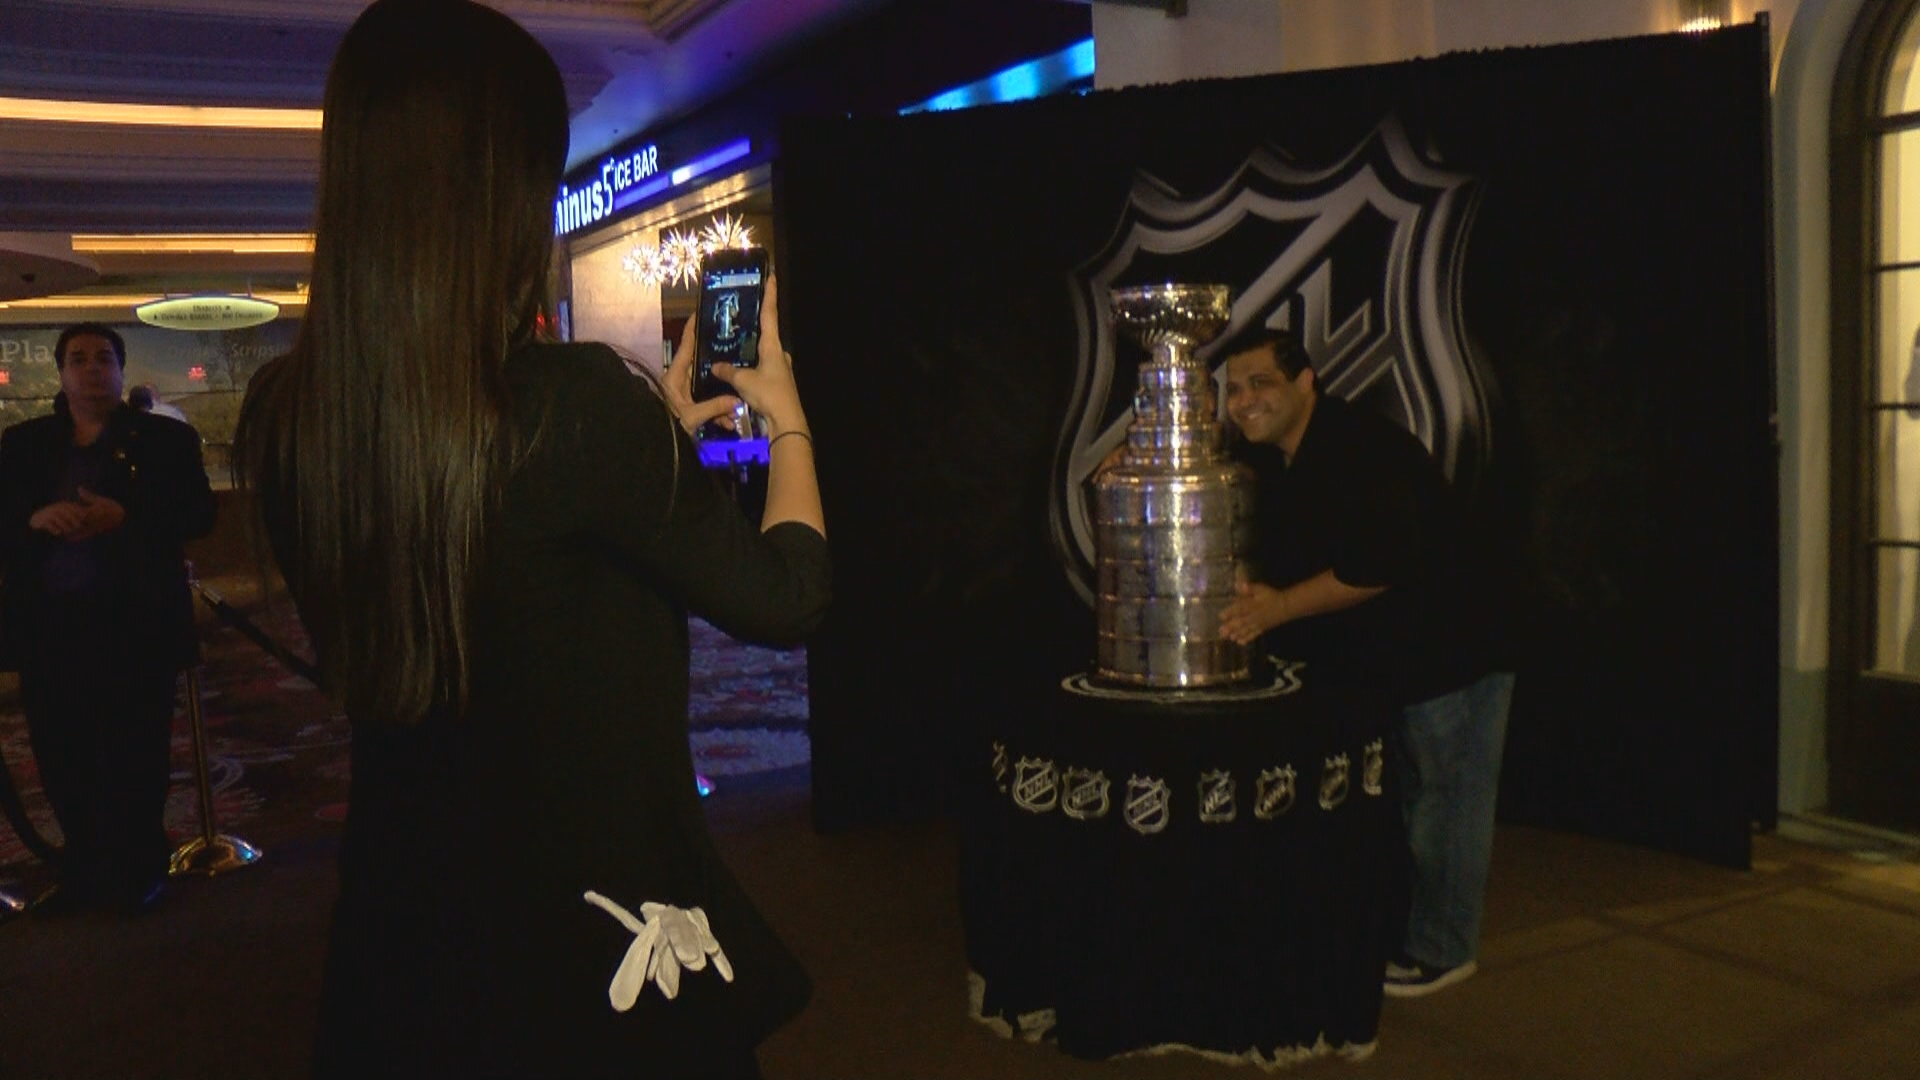 The Stanley Cup is on display Monday, June 19, 2017, outside the Park Theater Retail Store at Monte Carlo Resort and Casino on the Las Vegas Strip. (Robert Varela/KSNV)